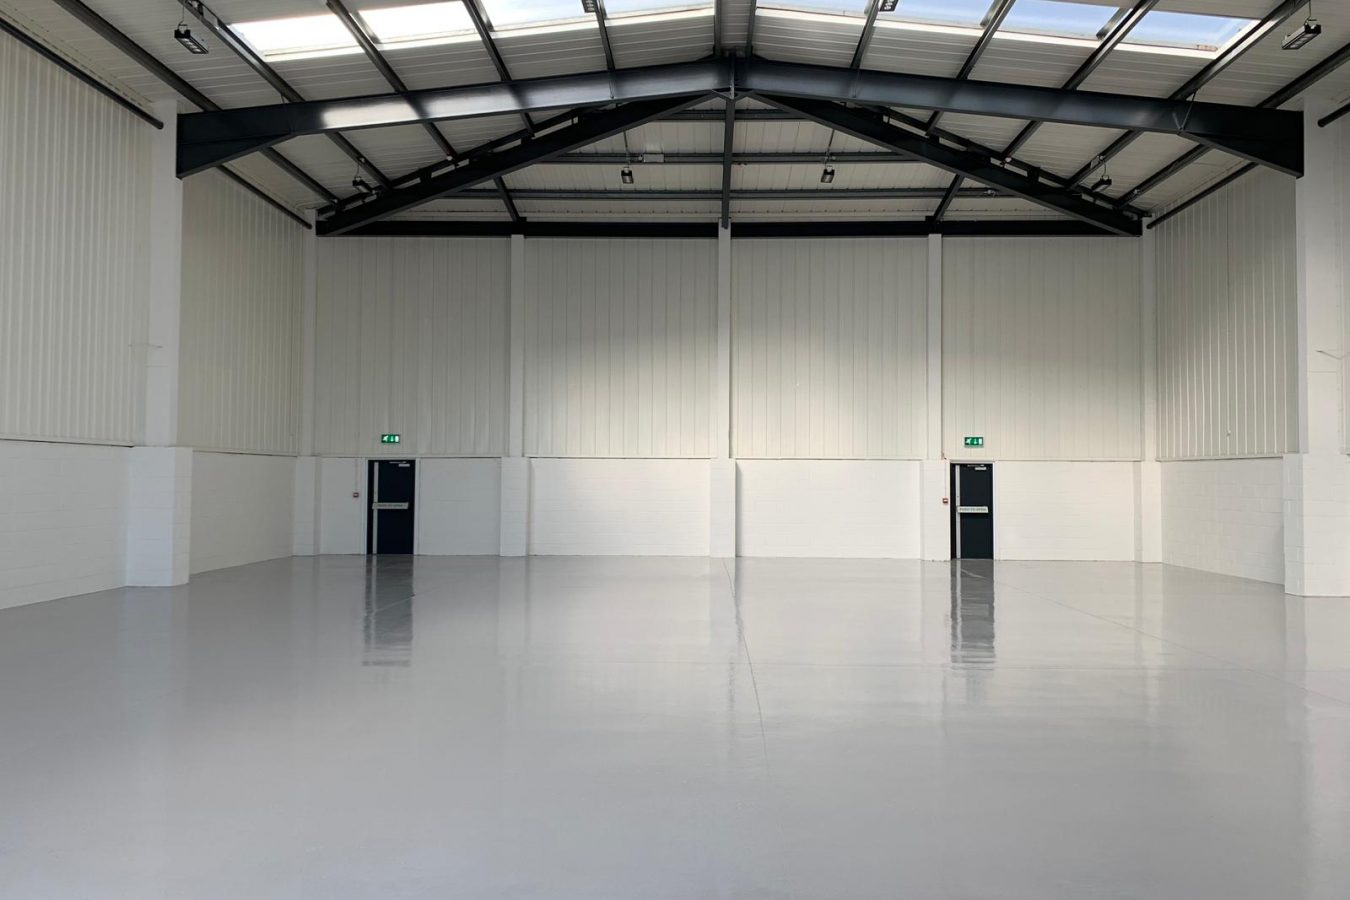 Warehouse space in Croydon, refurbished and sprayed in white color.